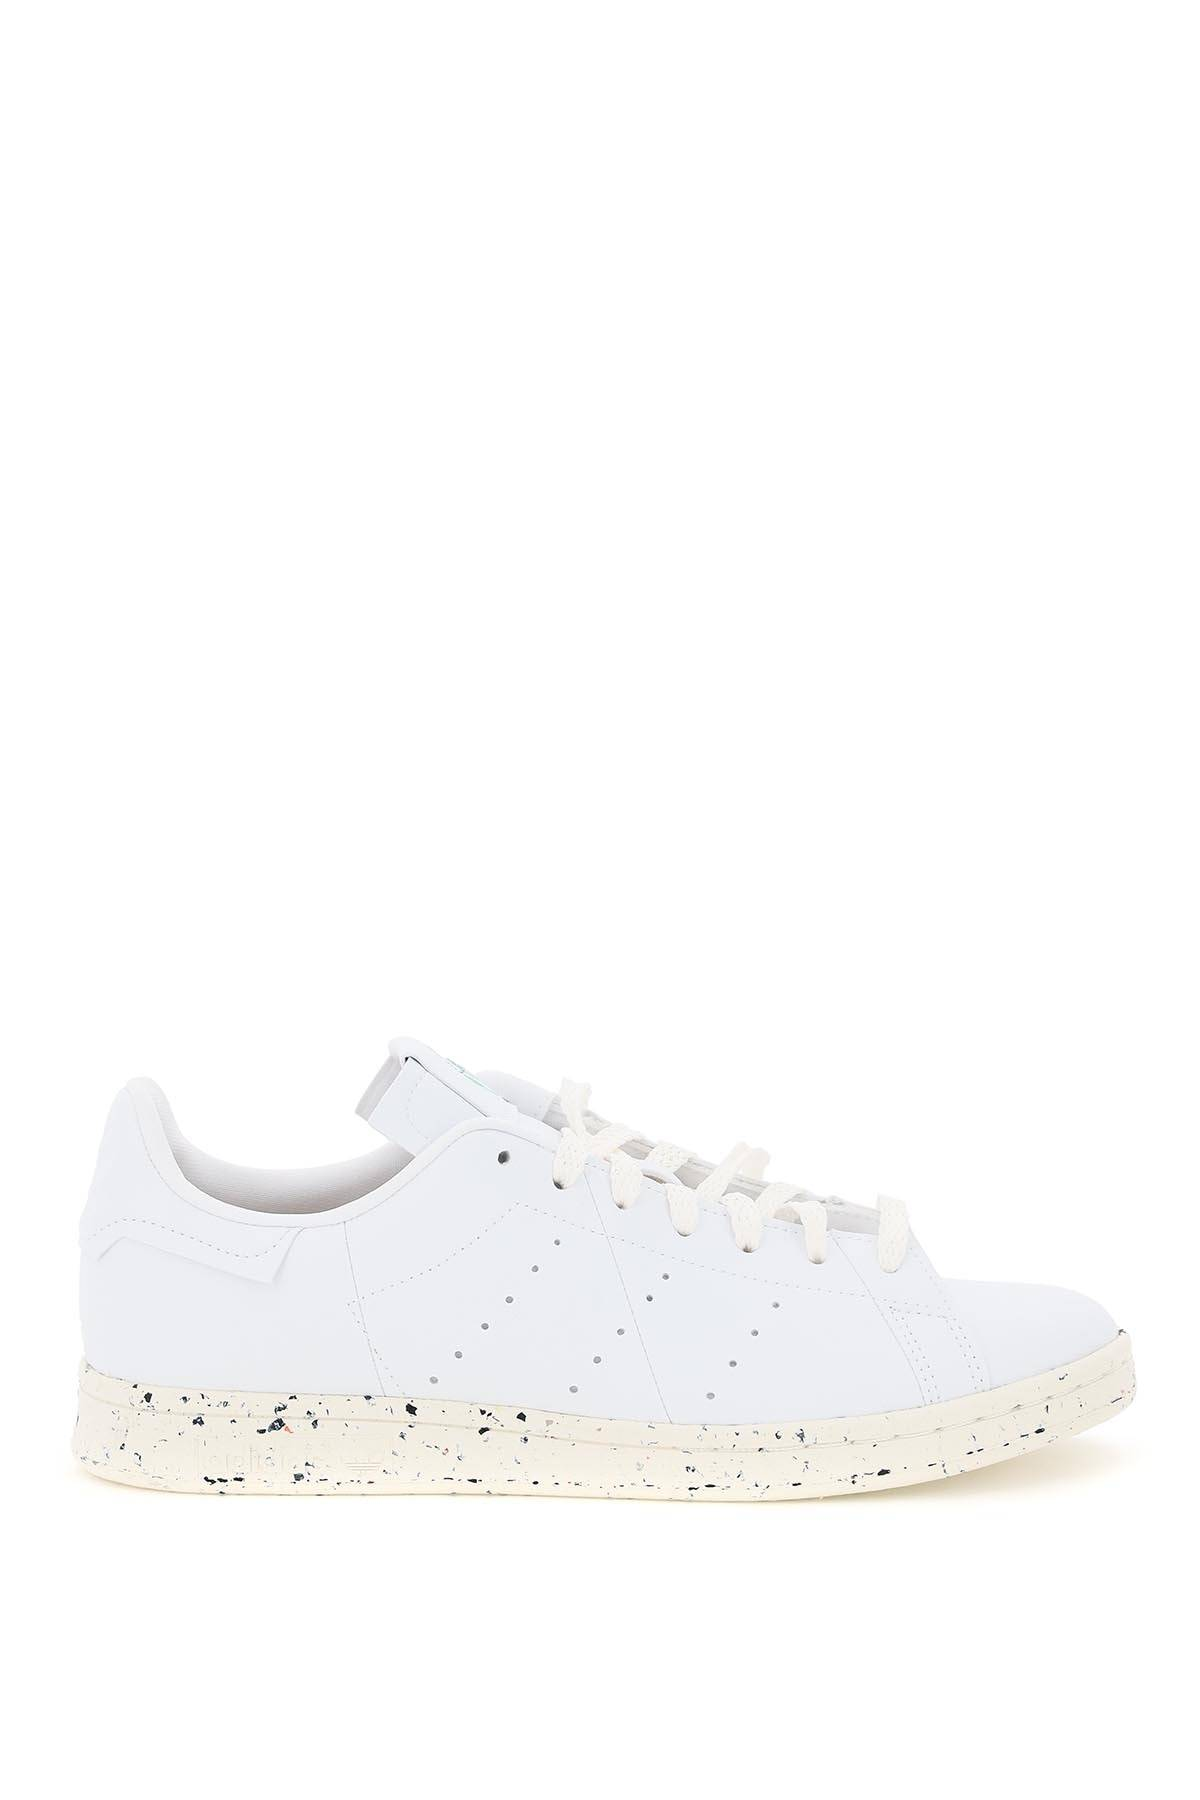 Adidas SNEAKERS STAN SMITH 9,5 Bianco